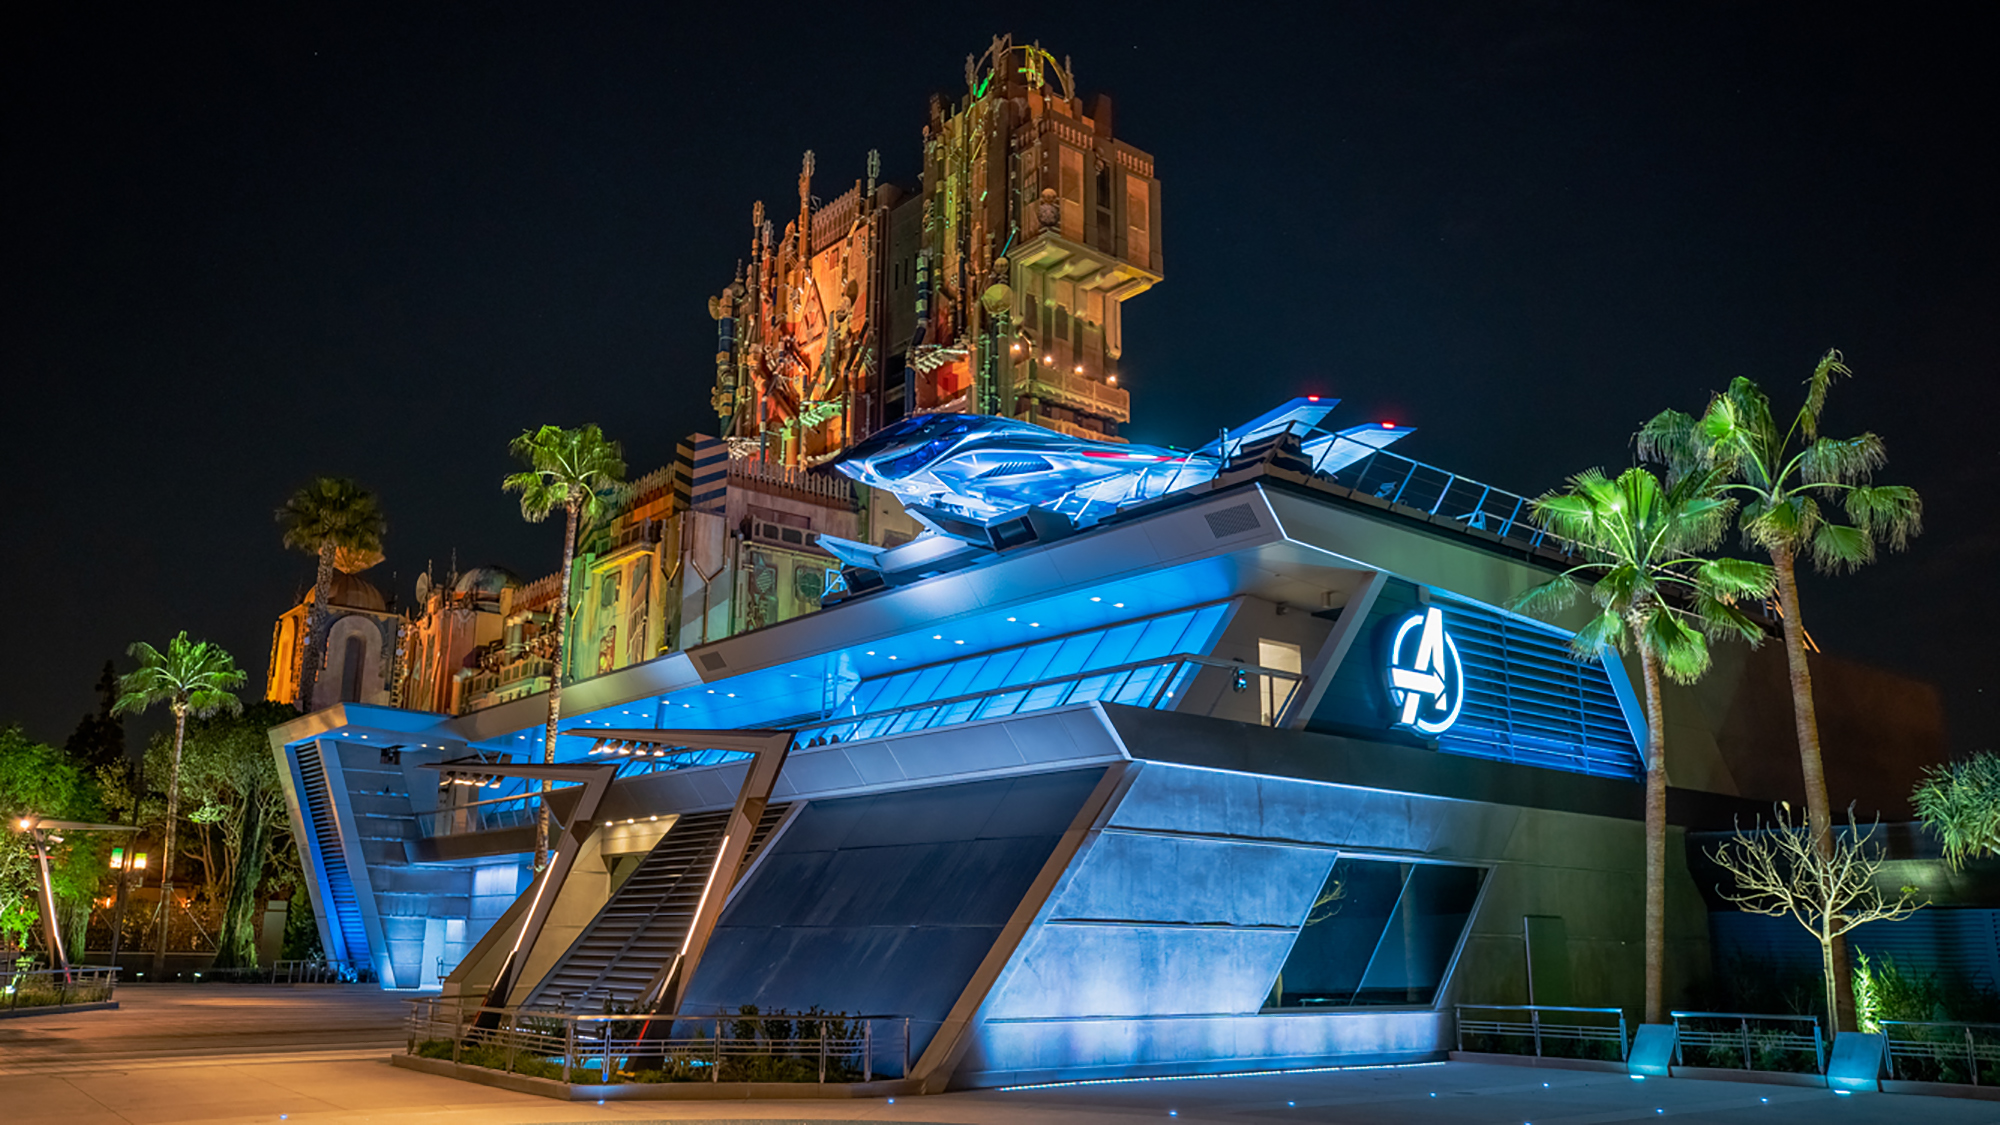 Disney sets opening date for Marvel's Avengers Campus